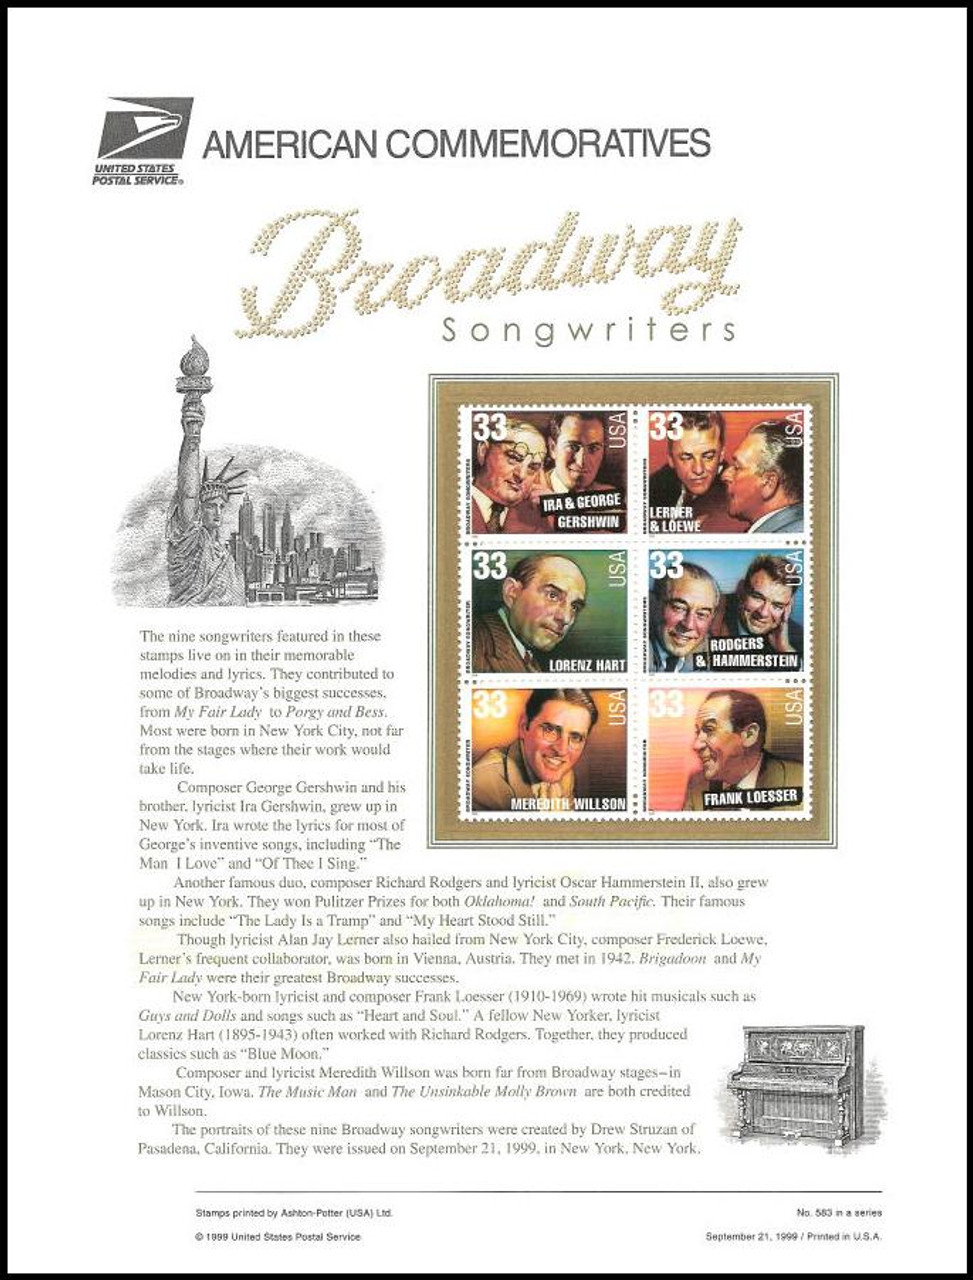 3345 -3350 / 33c Broadway Songwriters 1999 USPS American Commemorative Panel Sealed #582